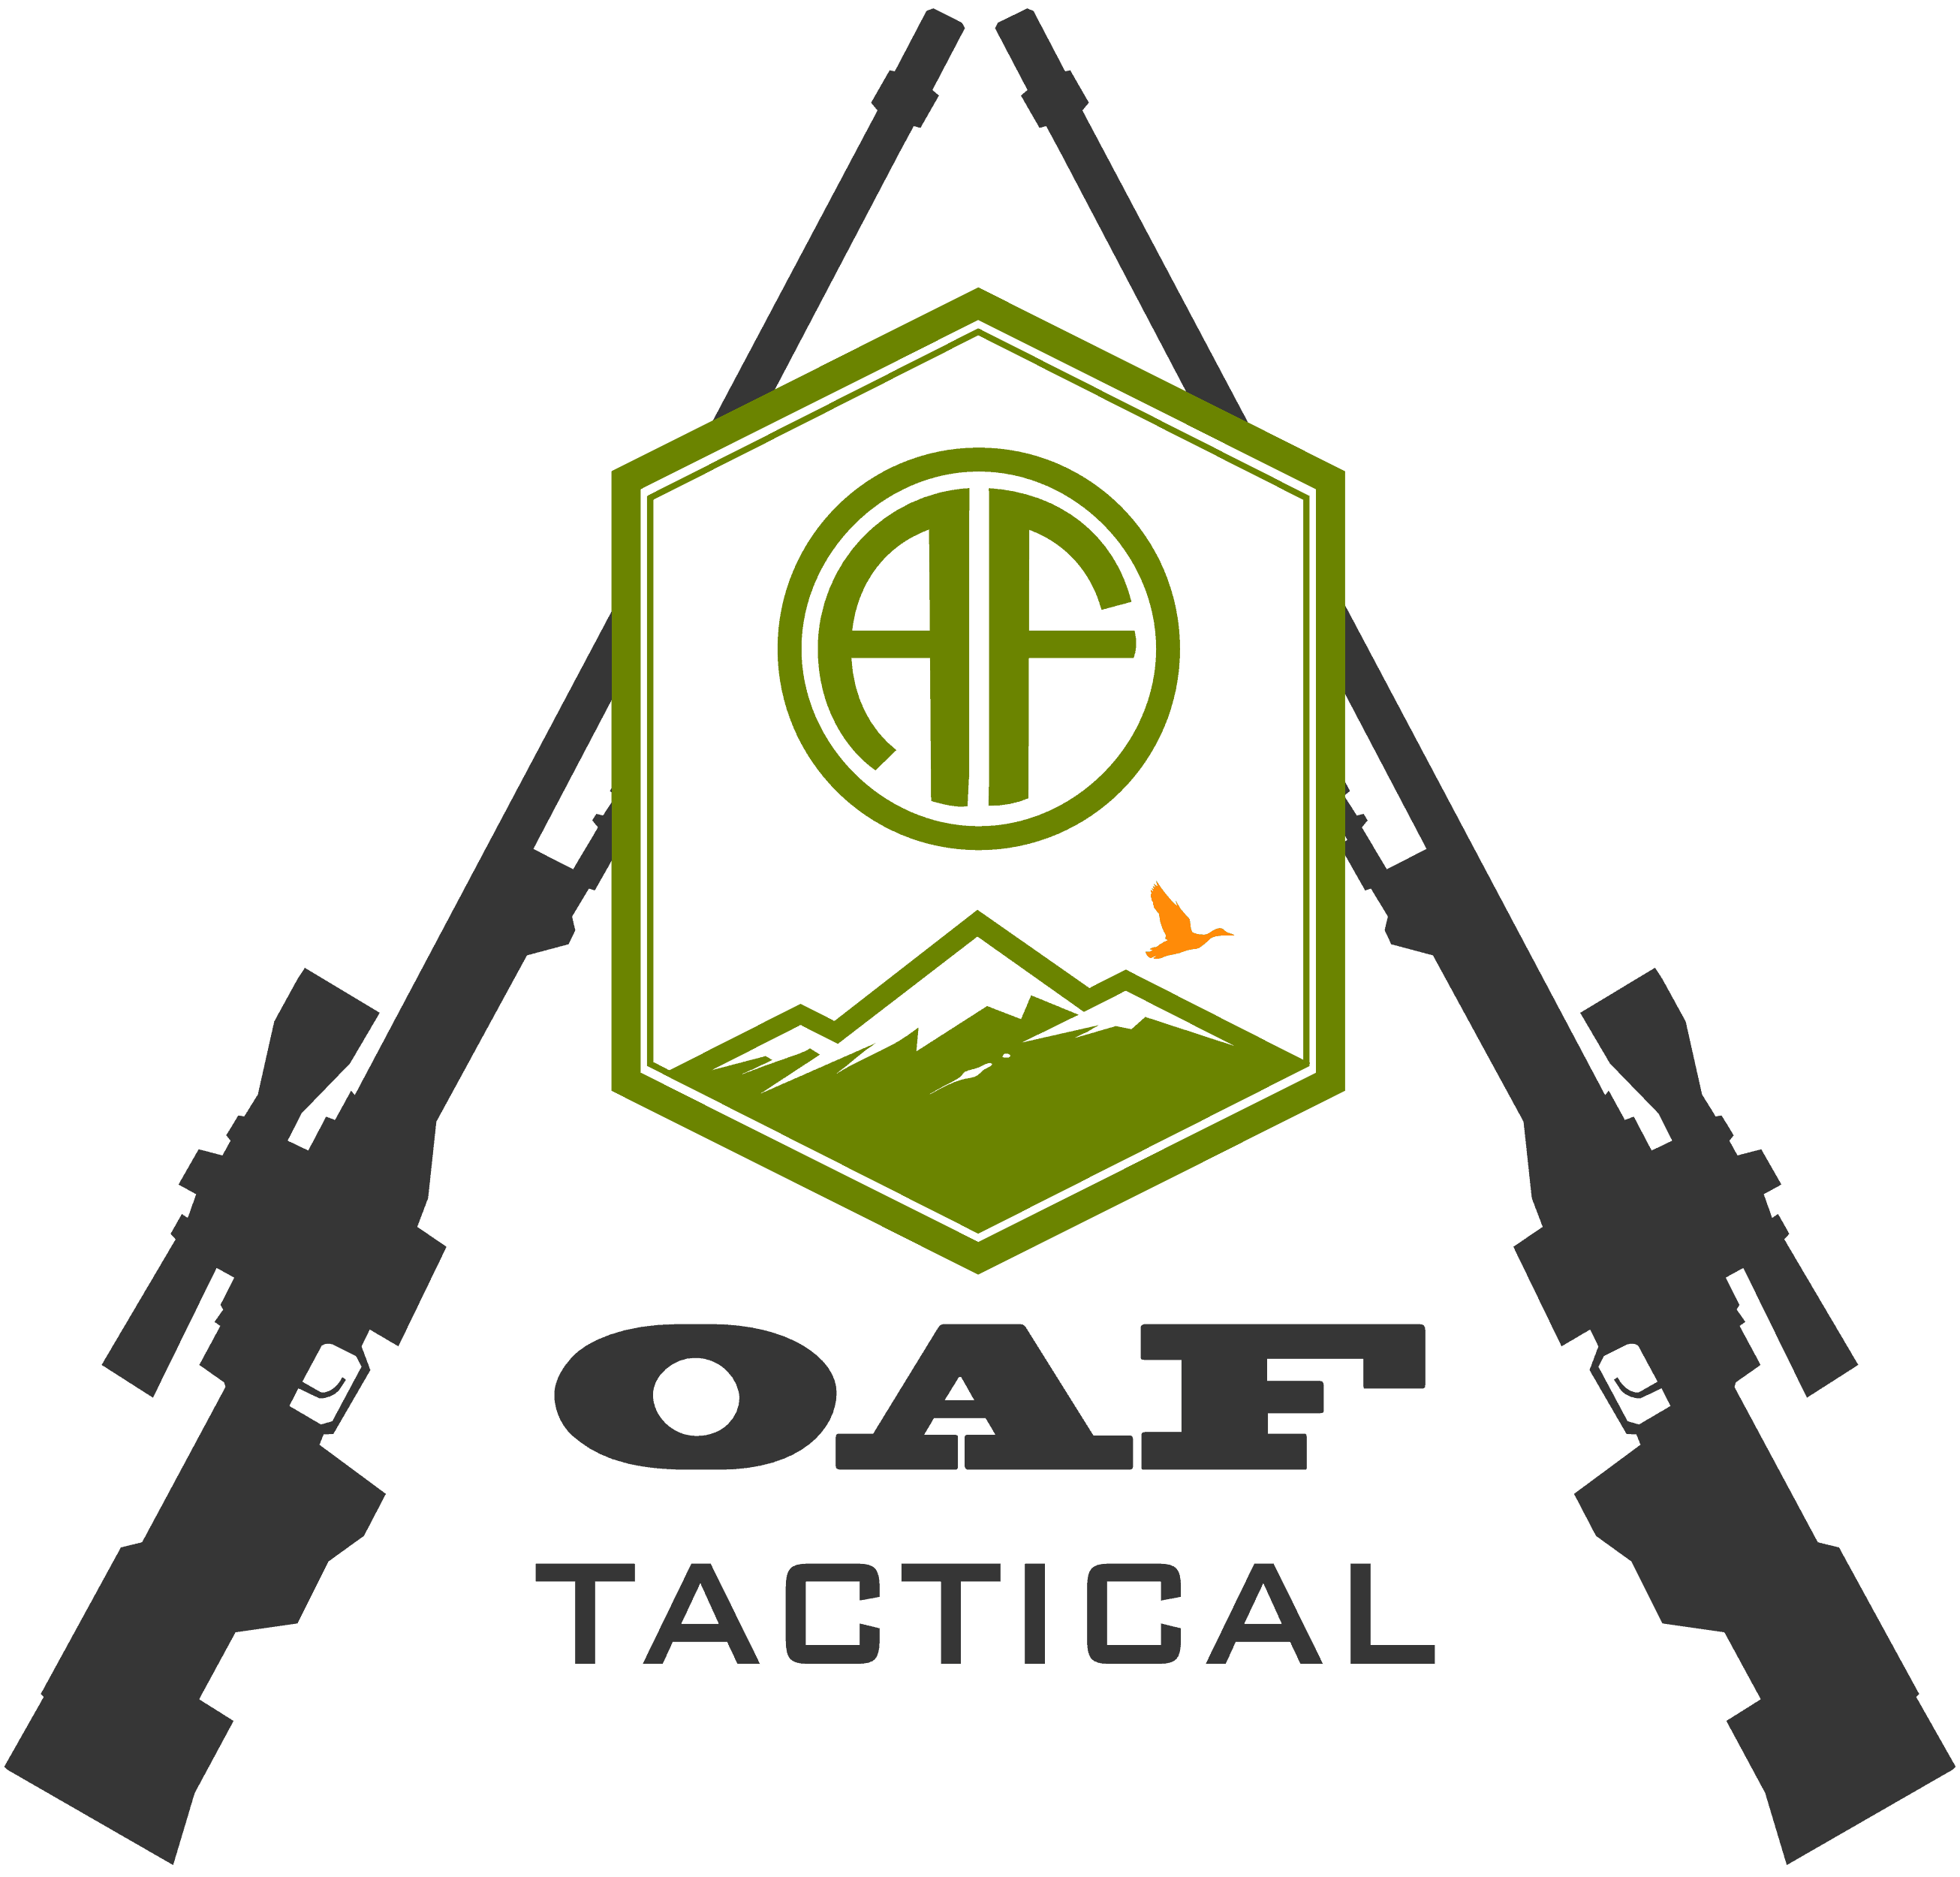 OAF Tactical